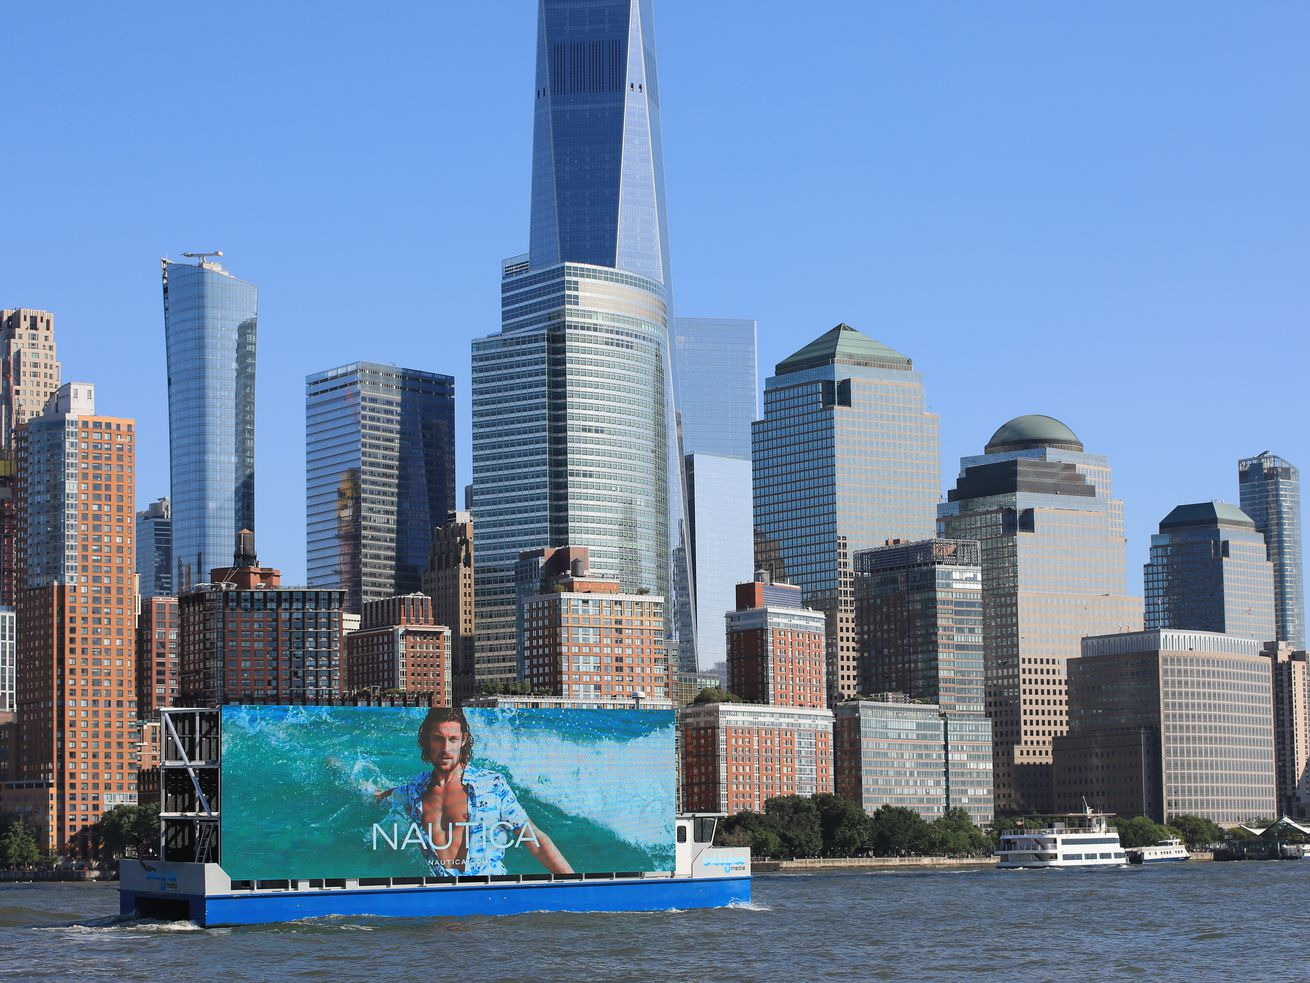 A billboard floats on a boat in the Hudson River, with the New York City skyline behind it.